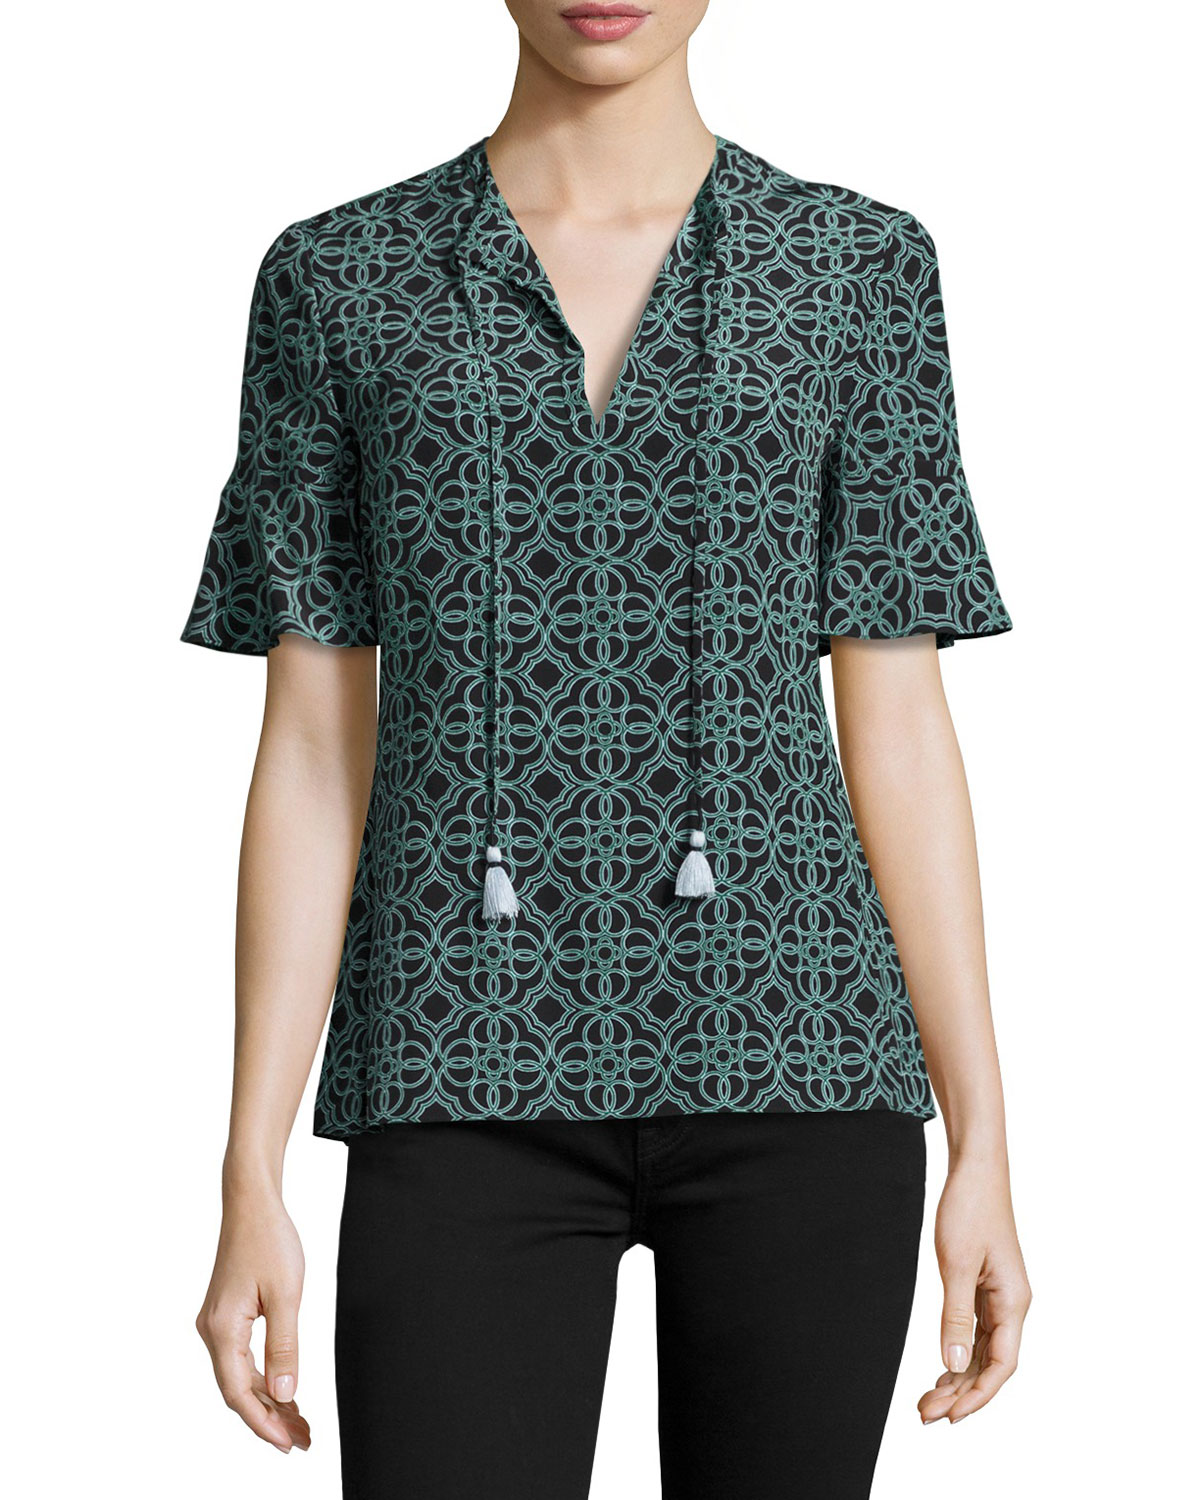 Massey Half-Sleeve Tile-Print Tasseled Silk Top, Black Pompidou